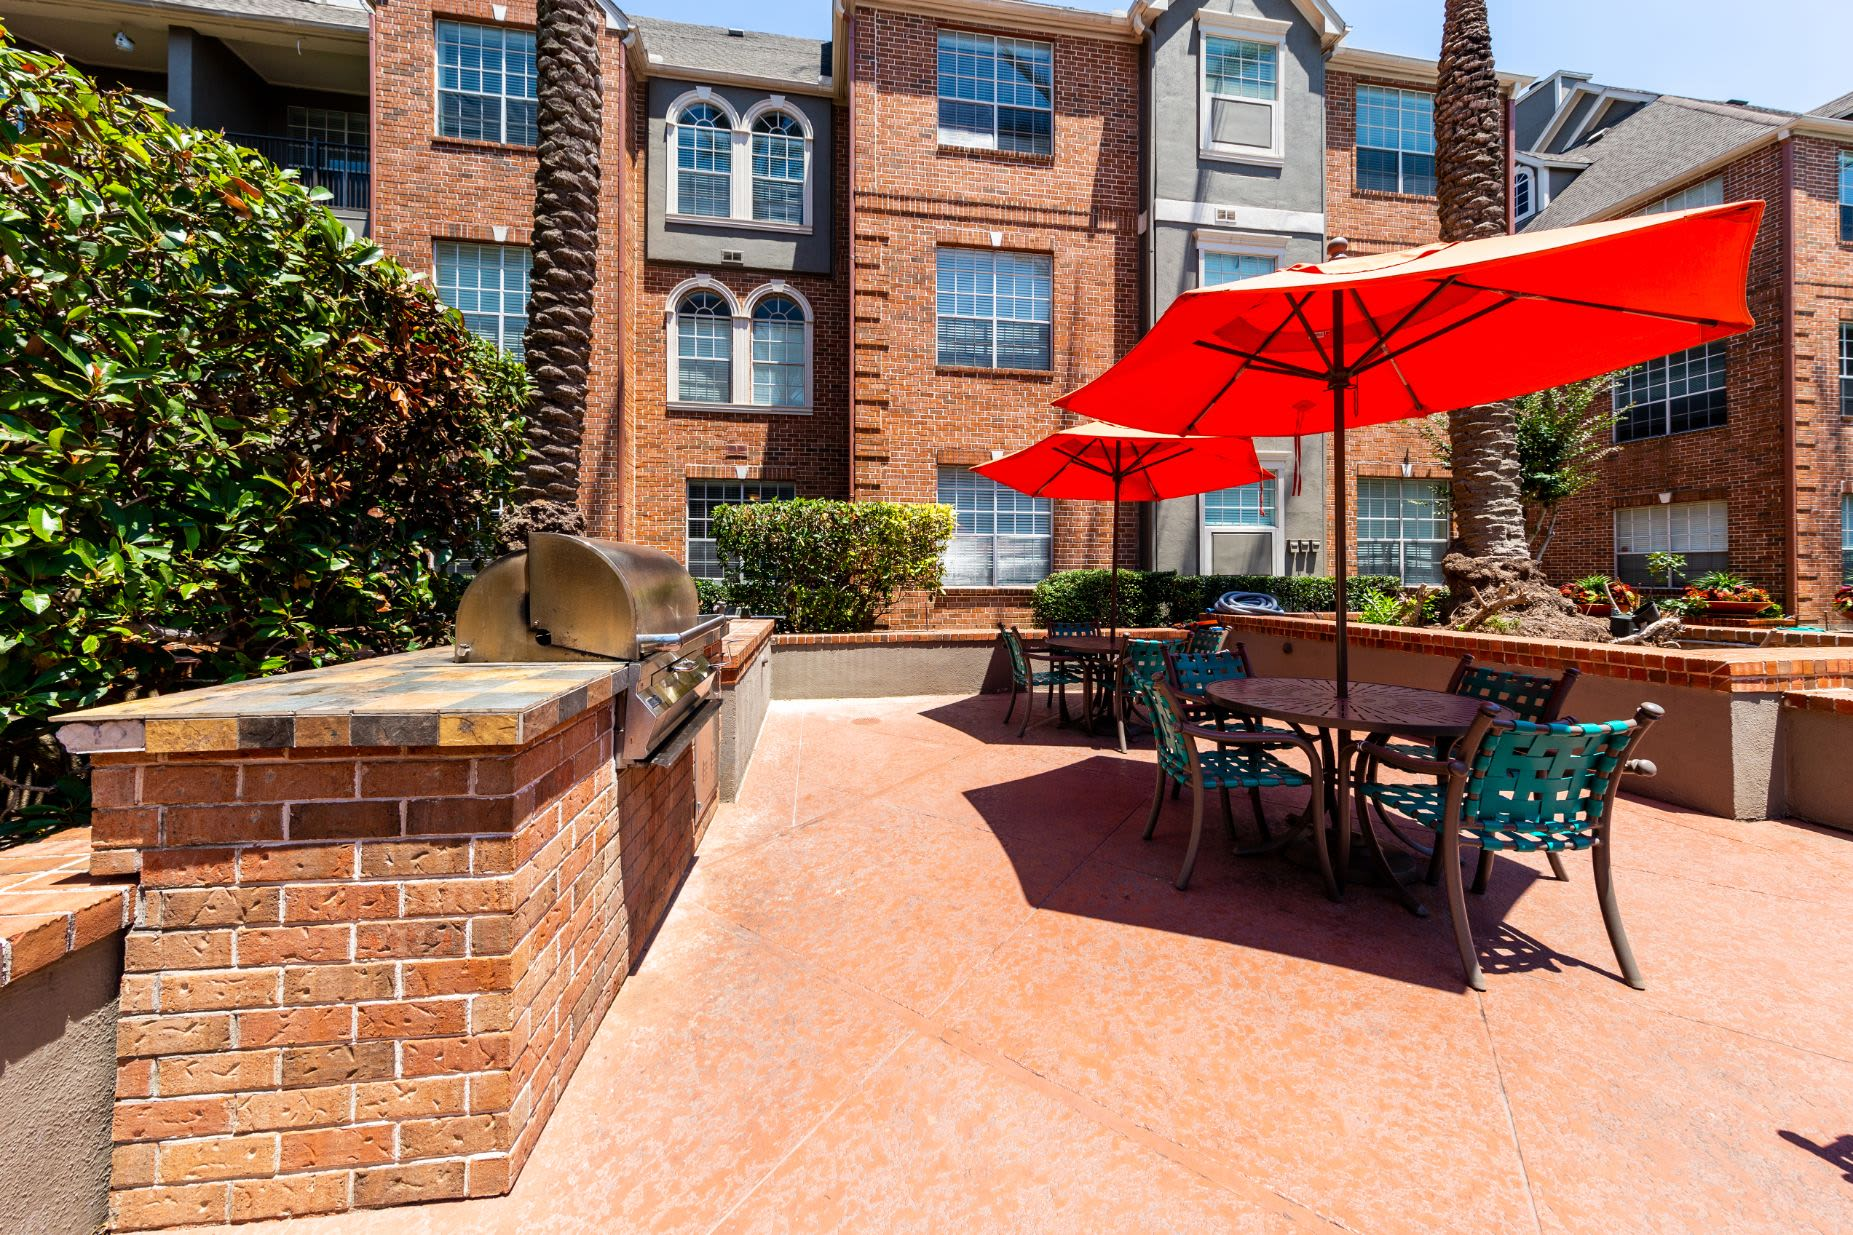 Patio with seating and gas grills at Marquis on Pin Oak in Houston, Texas